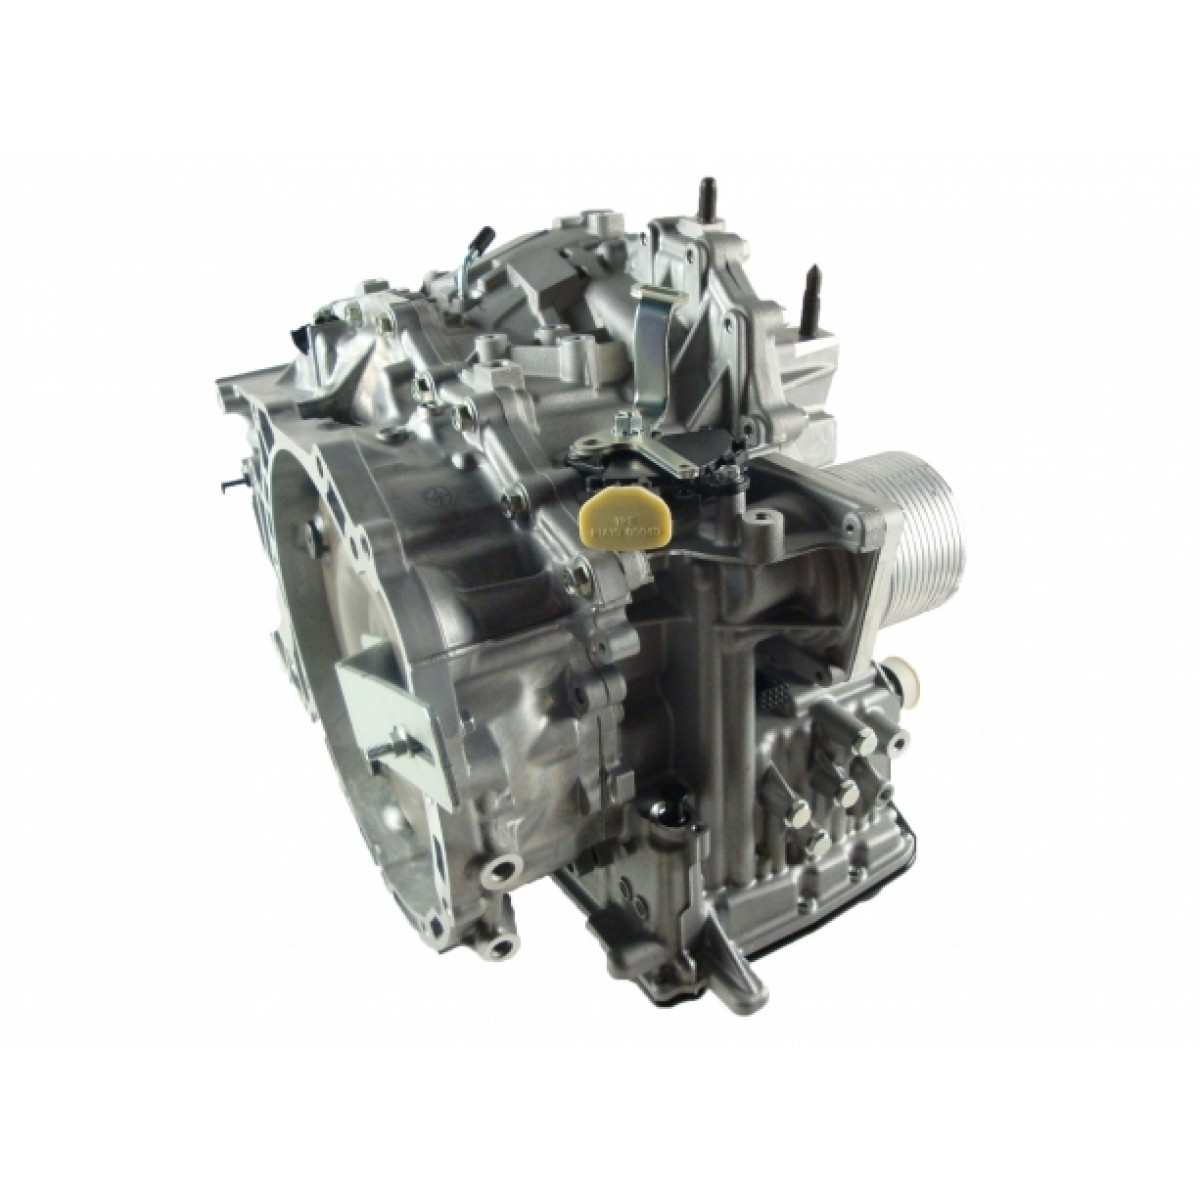 mitsubishi_outlander_2.4_automatic_gearbox_2700a170_2.jpg